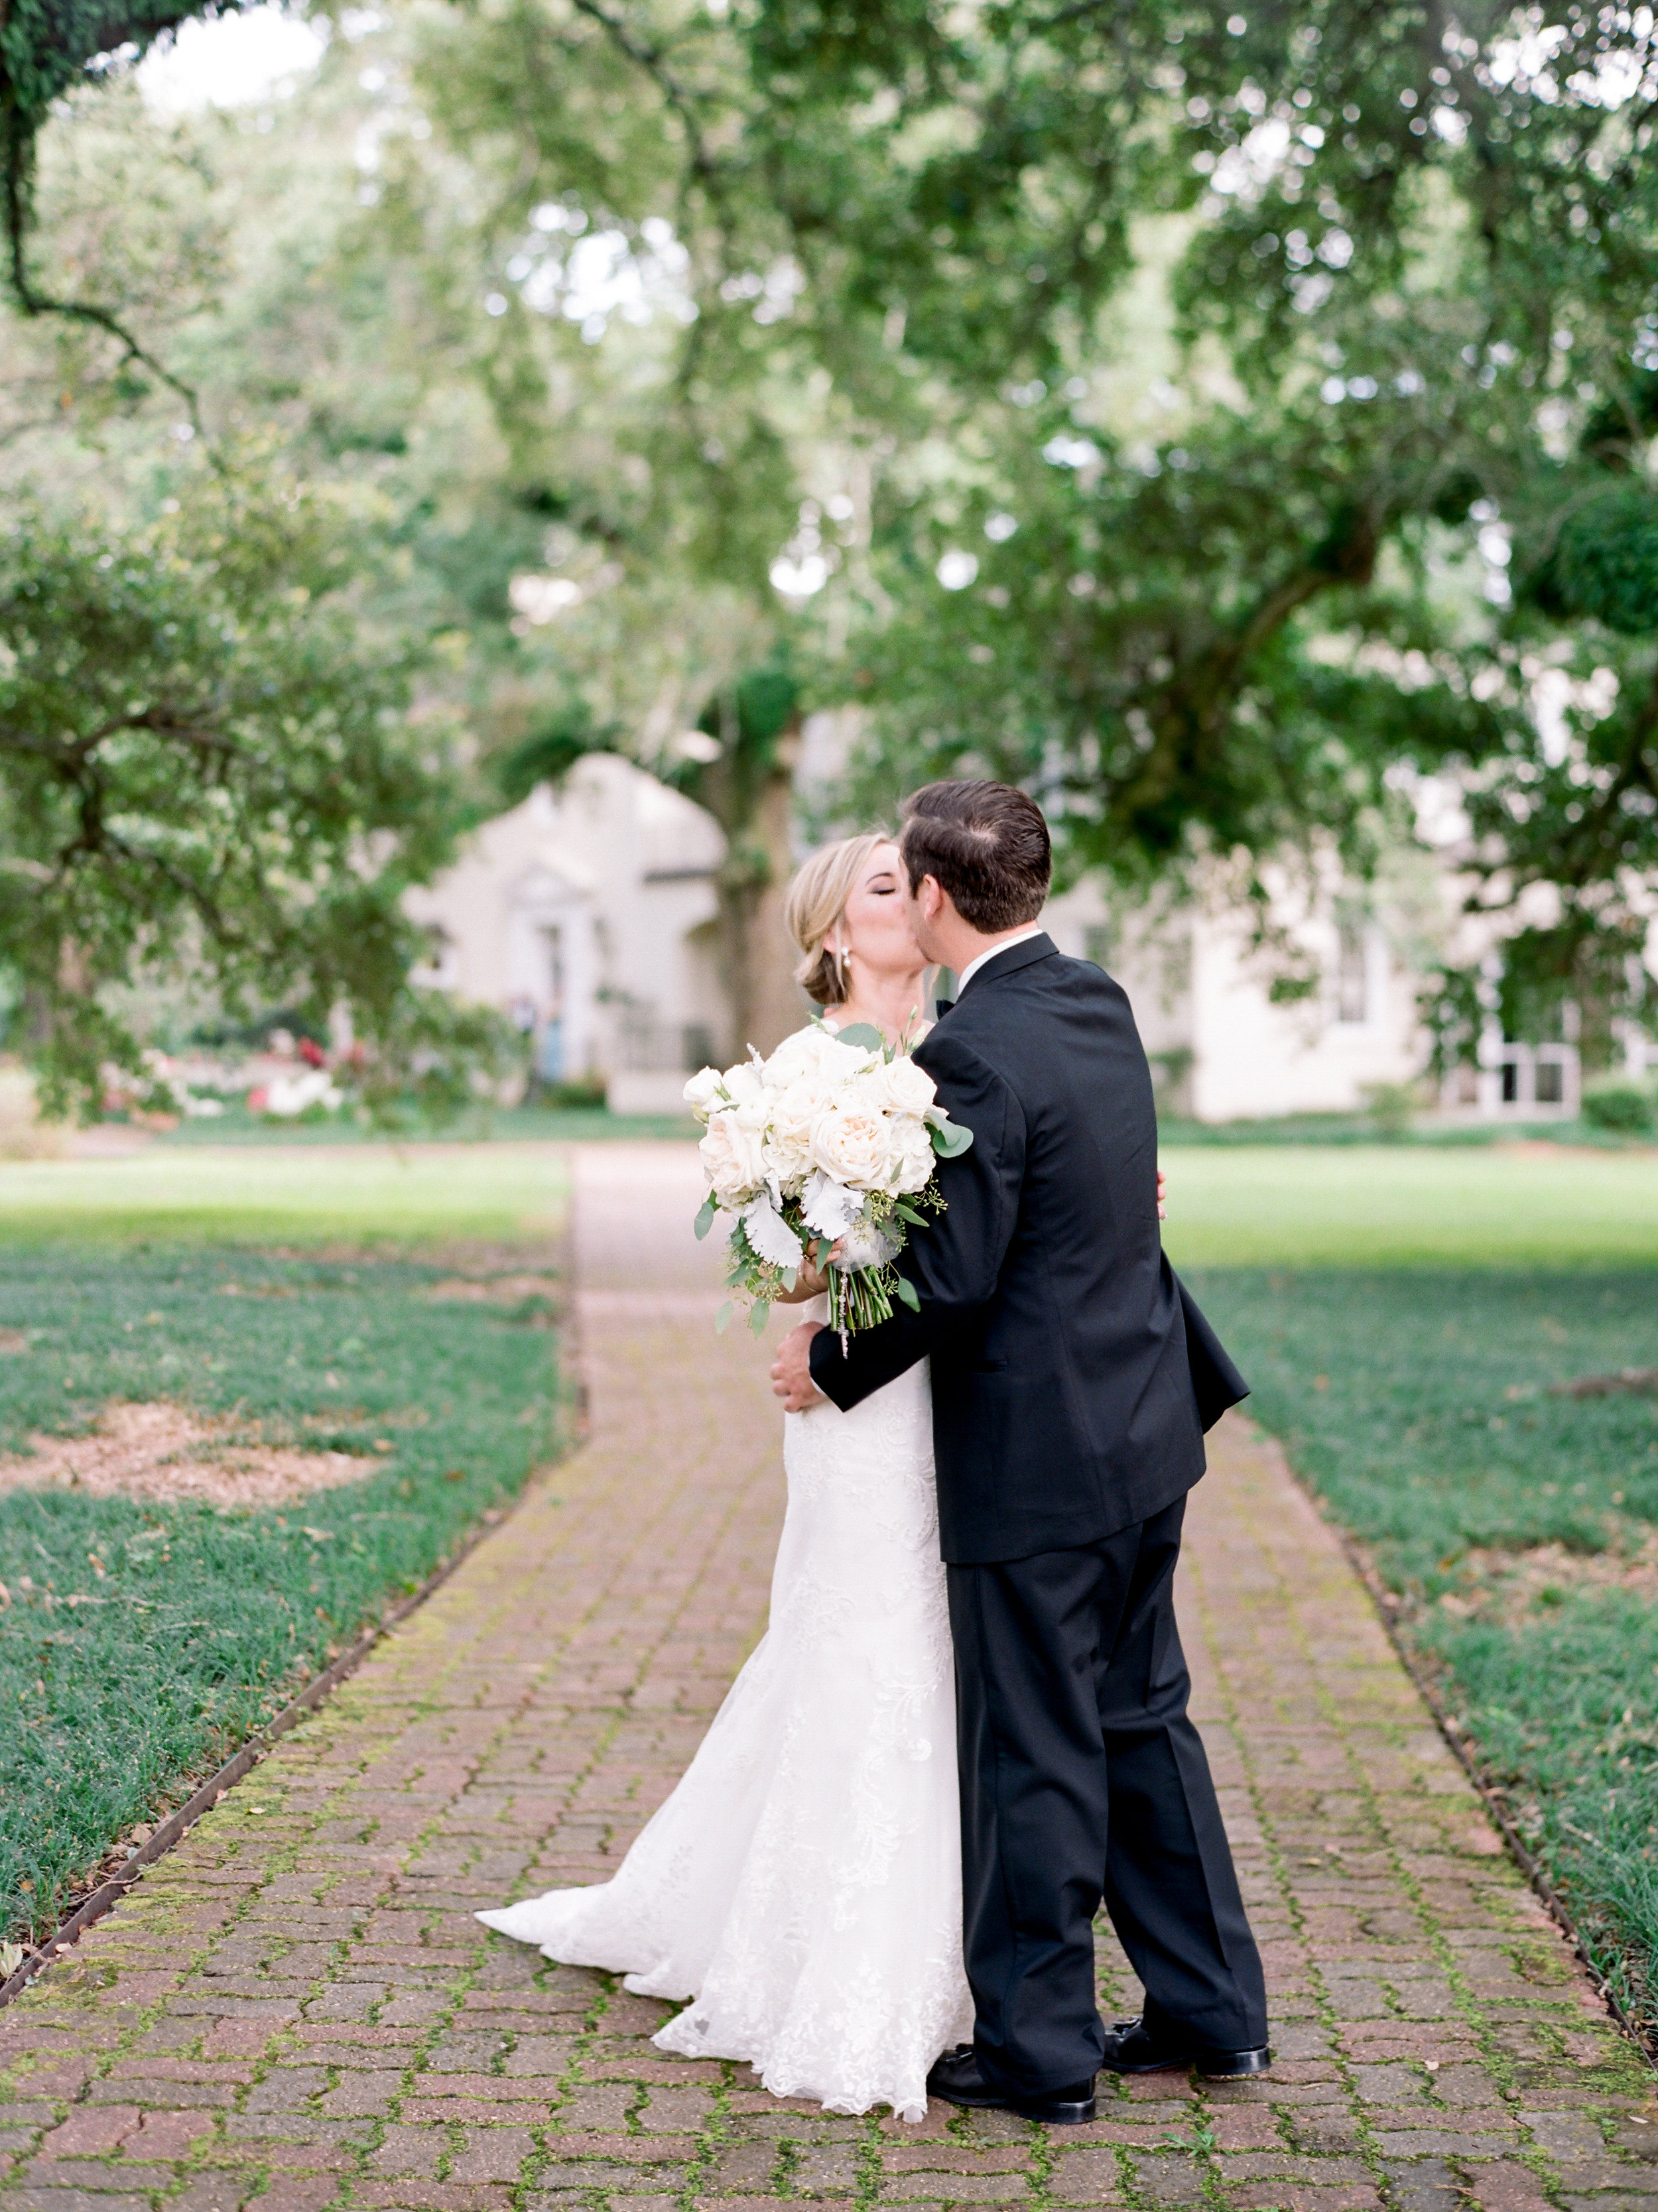 Southern Fete, Southern Wedding, Bride and Groom, First Look, Special Moment, Sarah Beth Photography